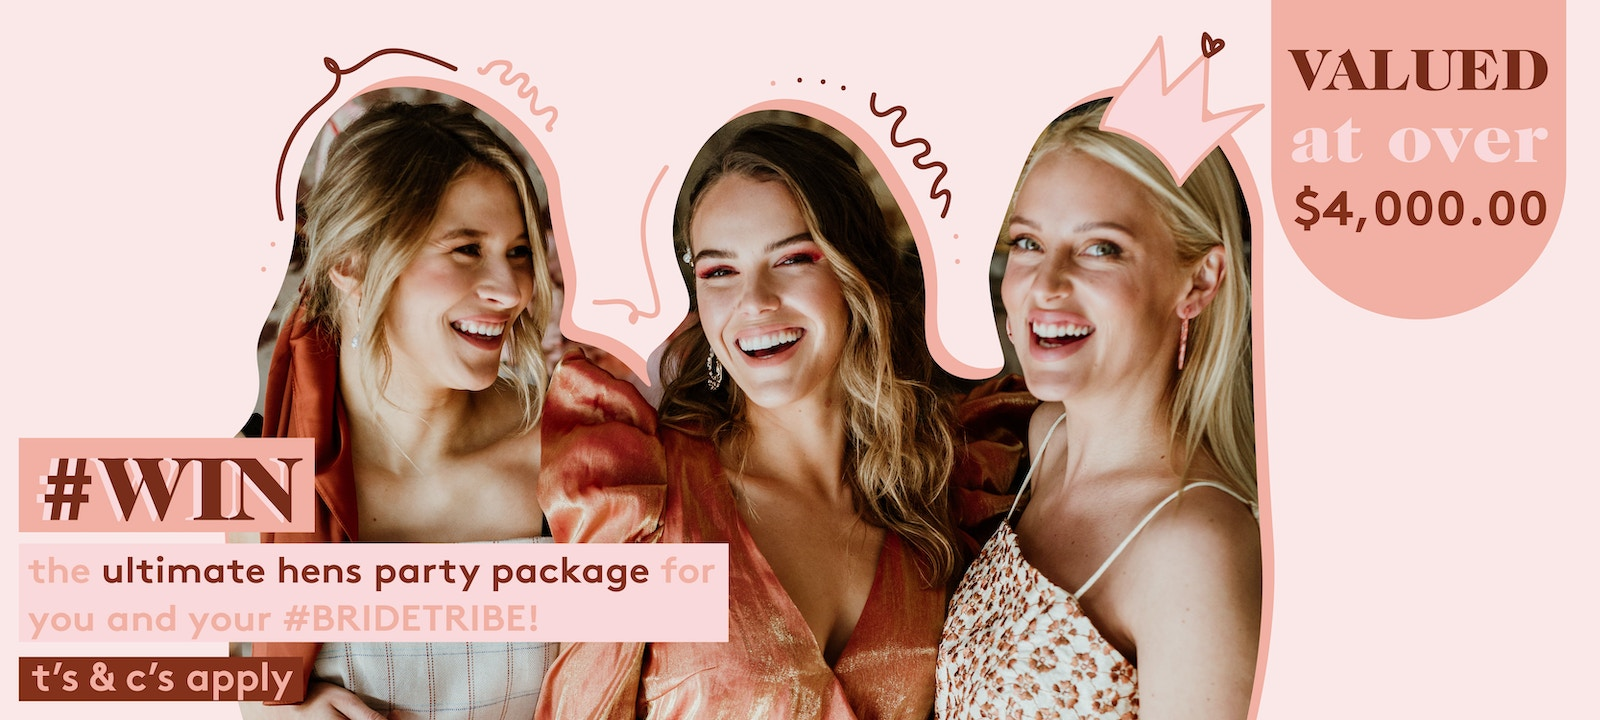 WIN The Ultimate Hens Day Party Package valued at $4,000!